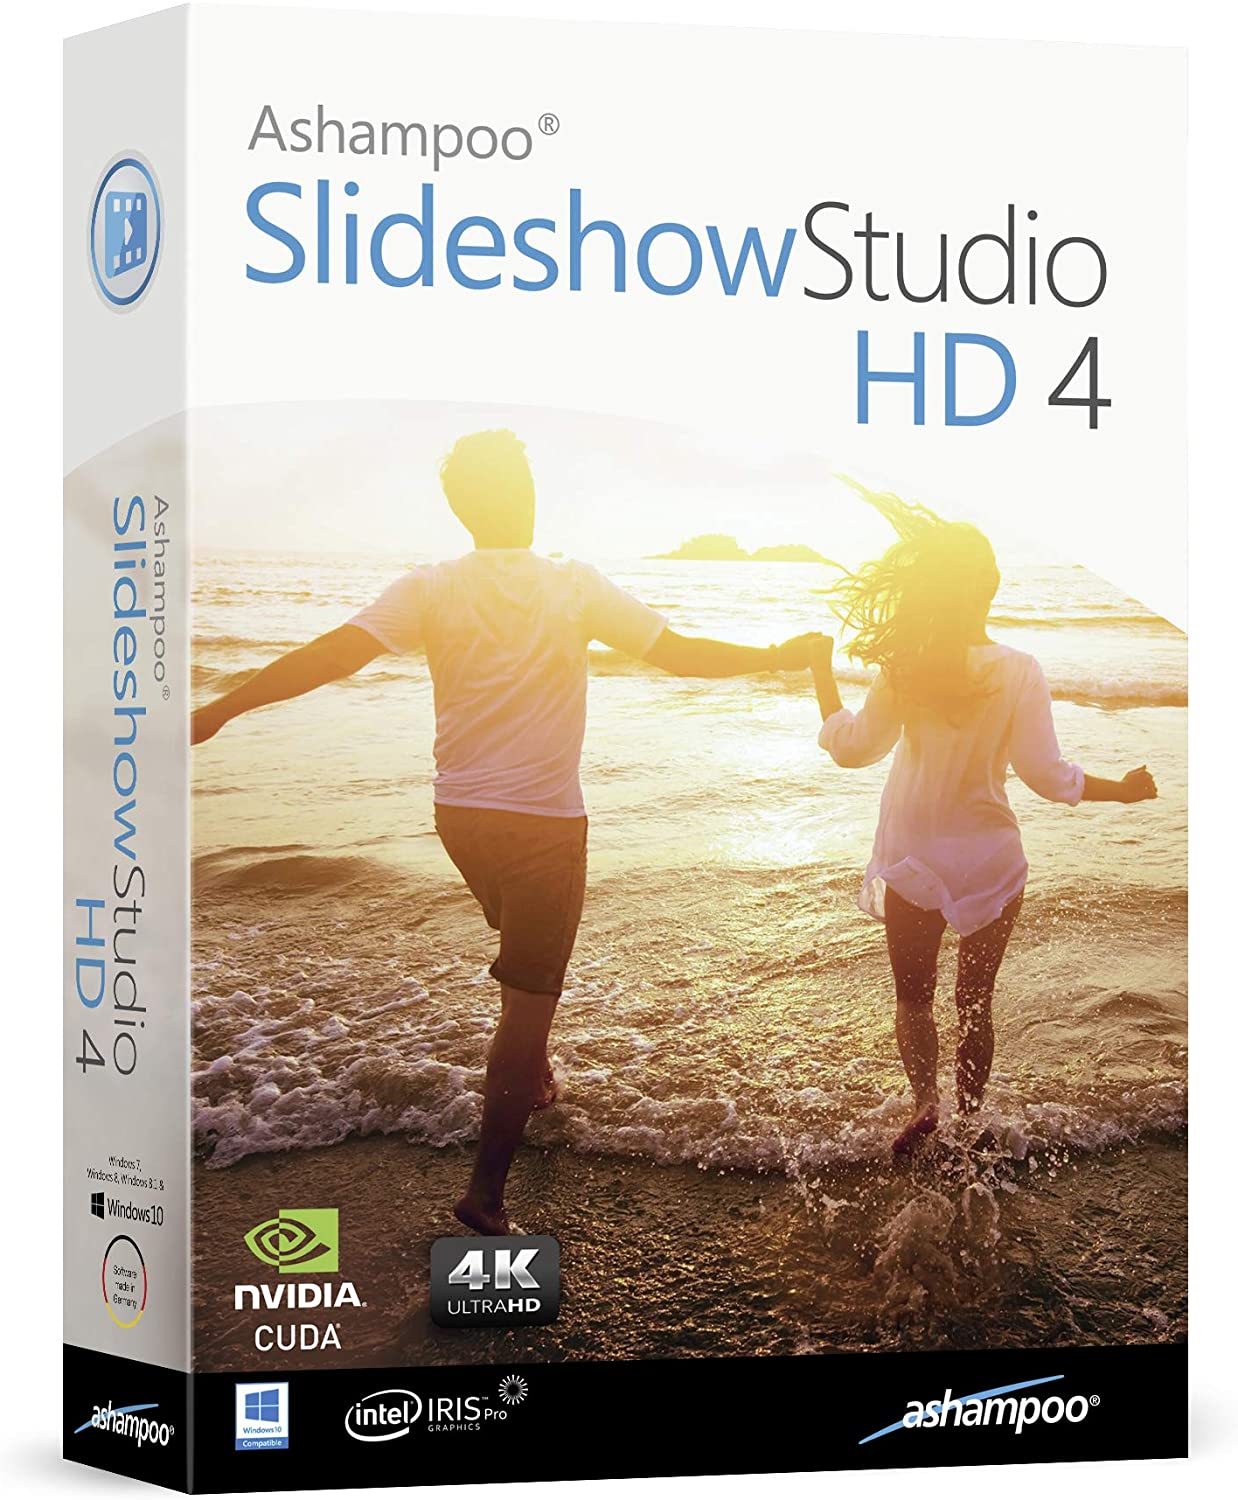 Slideshow Studio for Windows 10, 8.1, 7 - Turn your wedding, birthday and vacation photos into beautiful videos with music, transitions and effects 81rW4CIqMLL